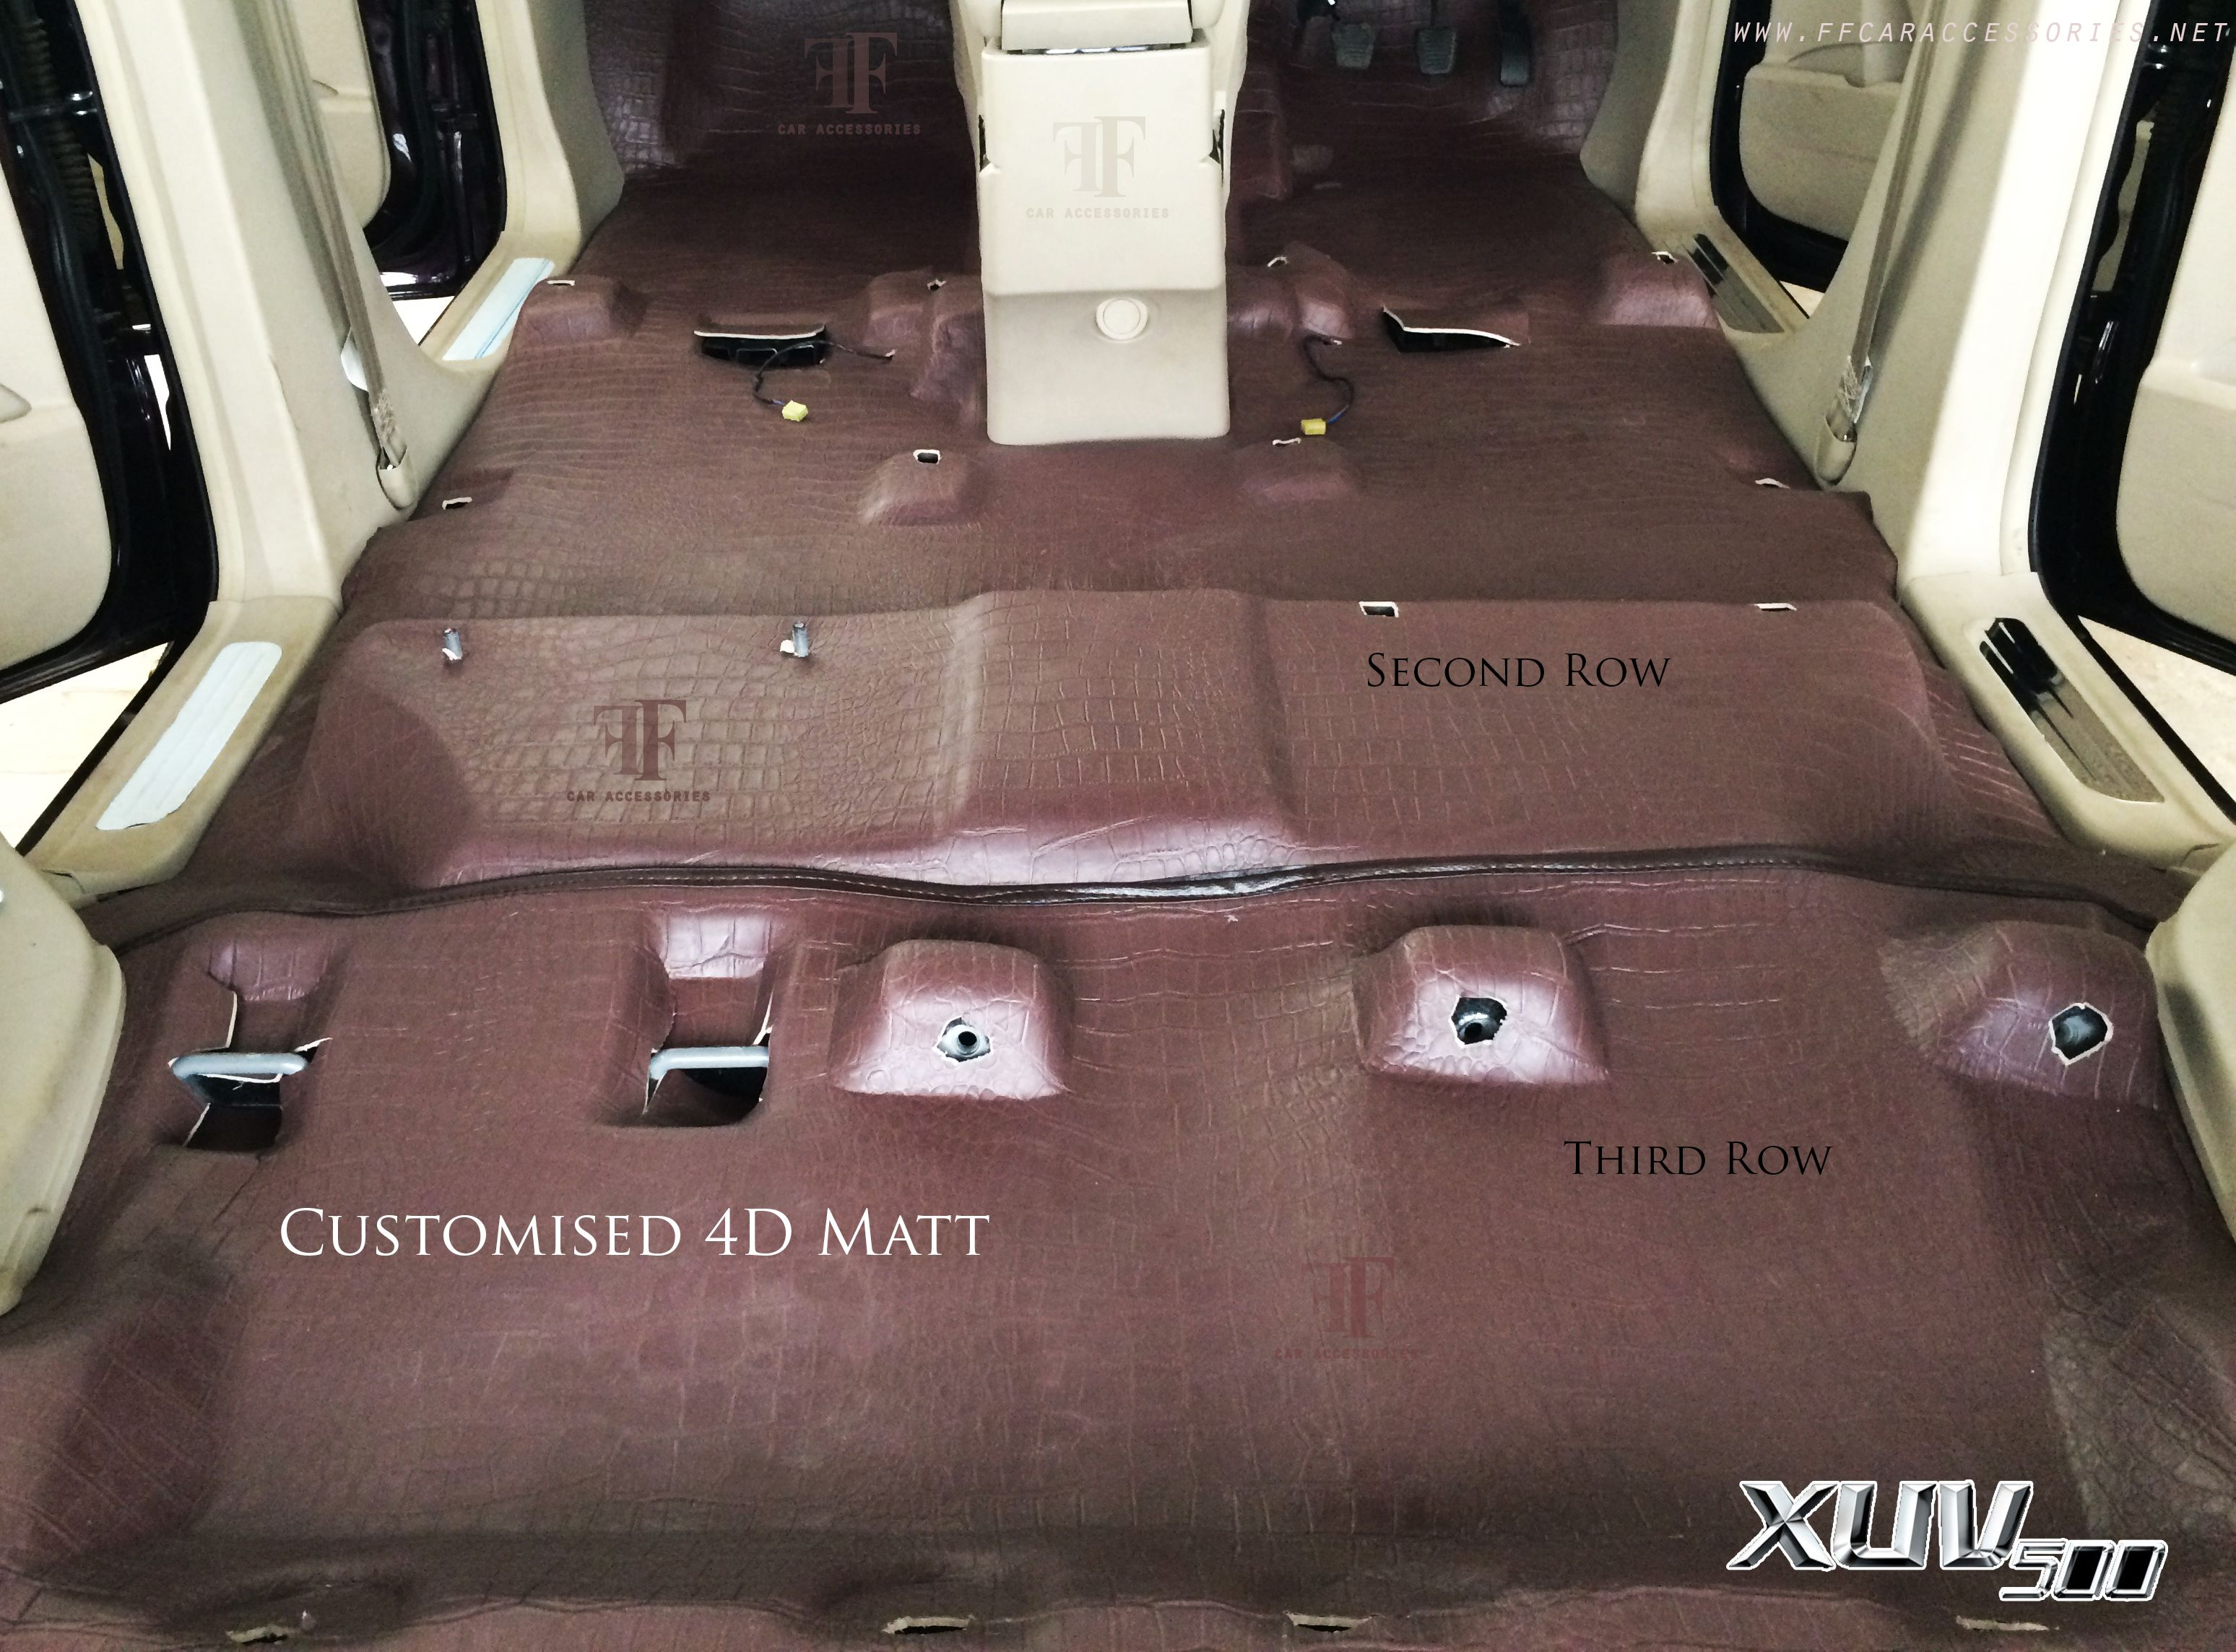 Second Row Third Row View From Top Angle Xuv 500 Car Accessories Carseat Cover Car Seats